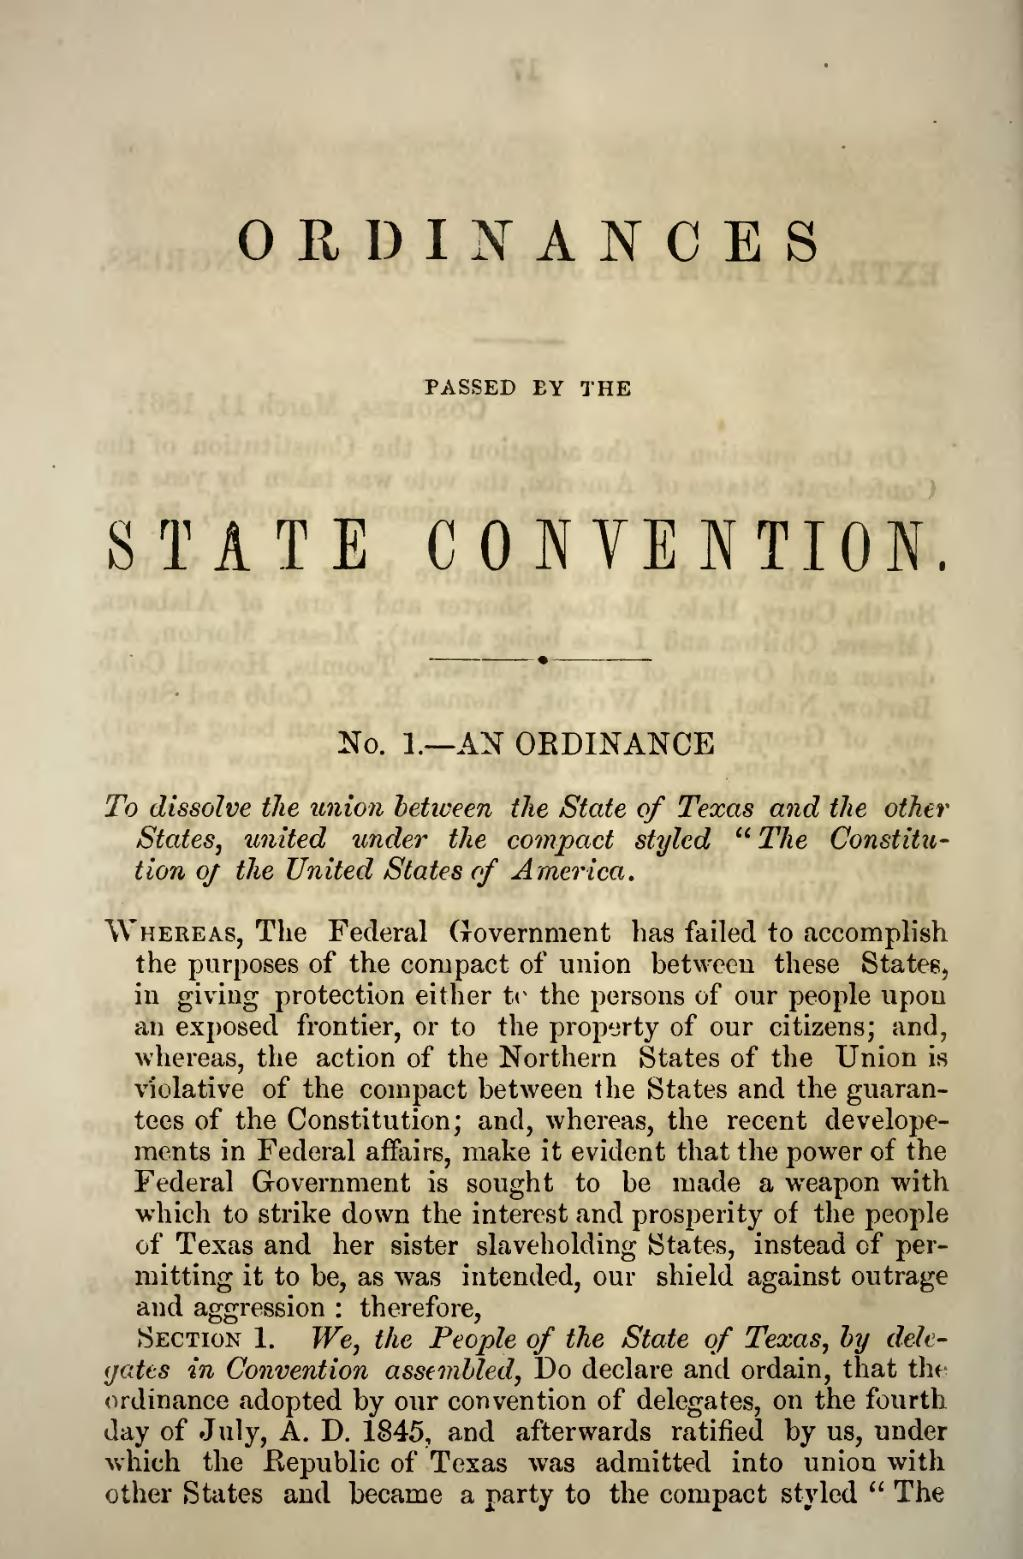 an overview of the constitution of the state of texas The texas constitution does not state when an adopted constitutional amendment takes effect, but texas courts consistently have held that the effective date is the date of the official canvass of returns showing adoption of the amendment, unless another date is clearly specified.